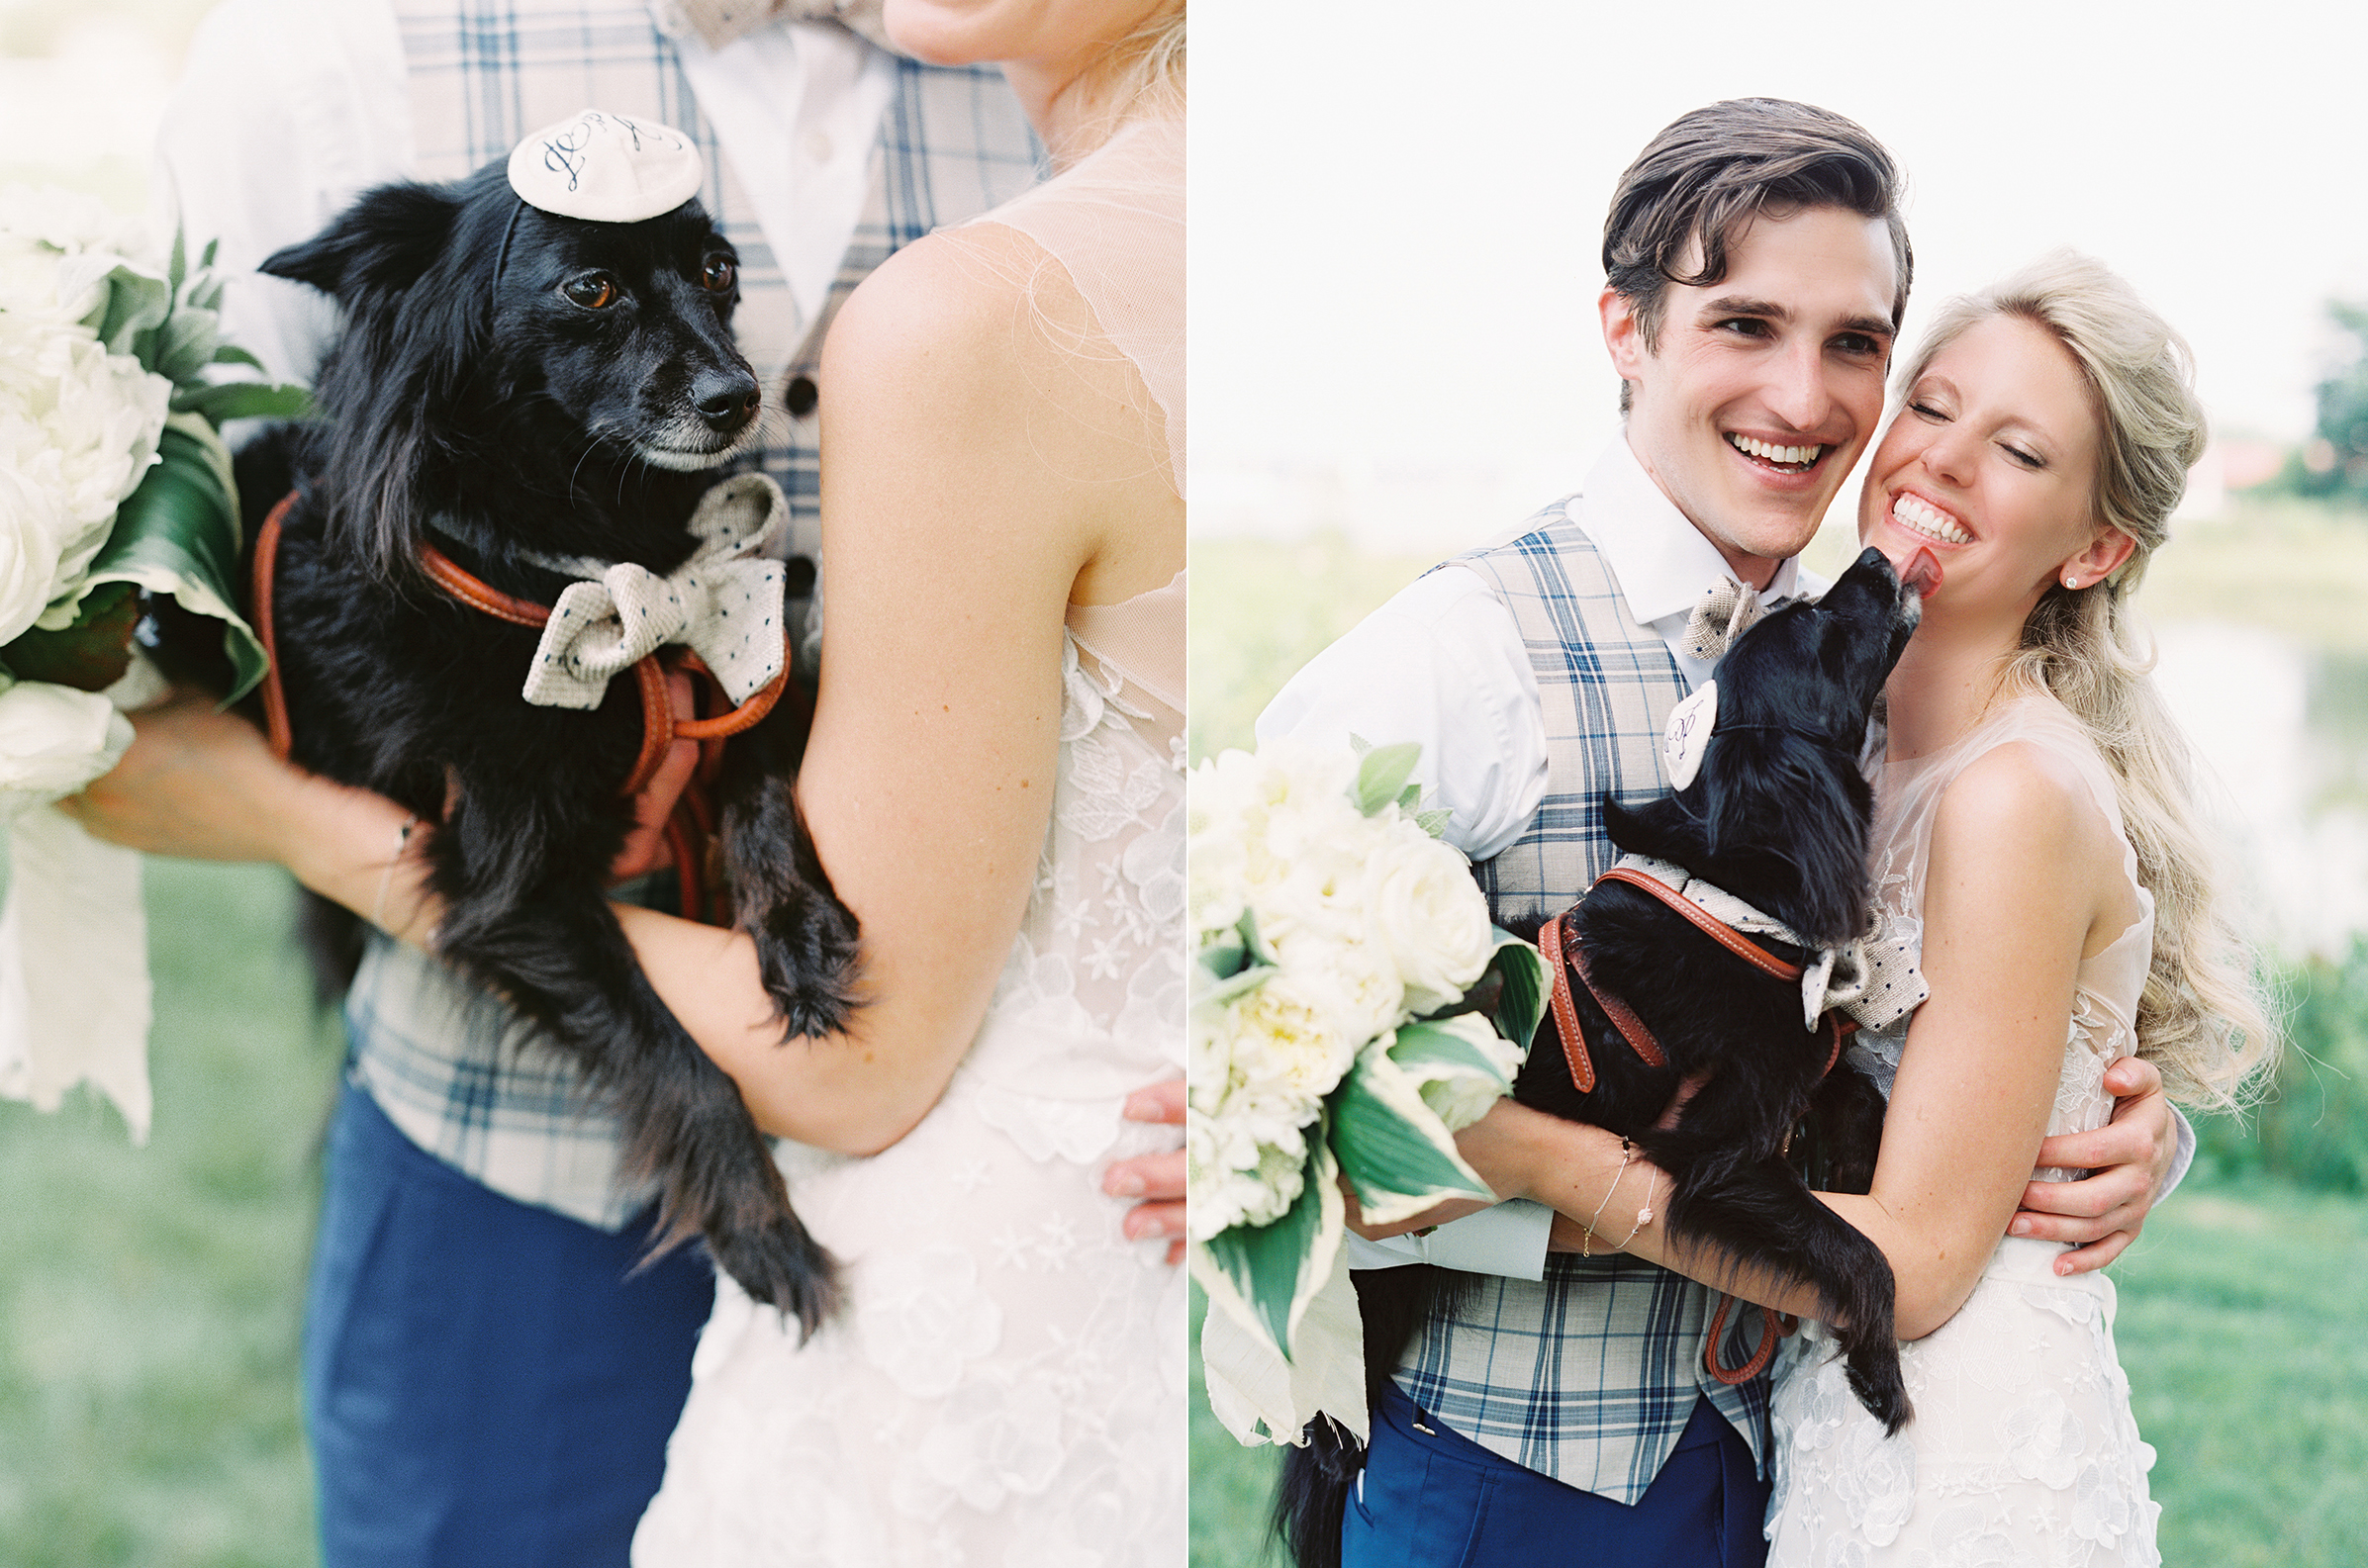 katie stoops photography-inn at perry cabin wedding33.jpg